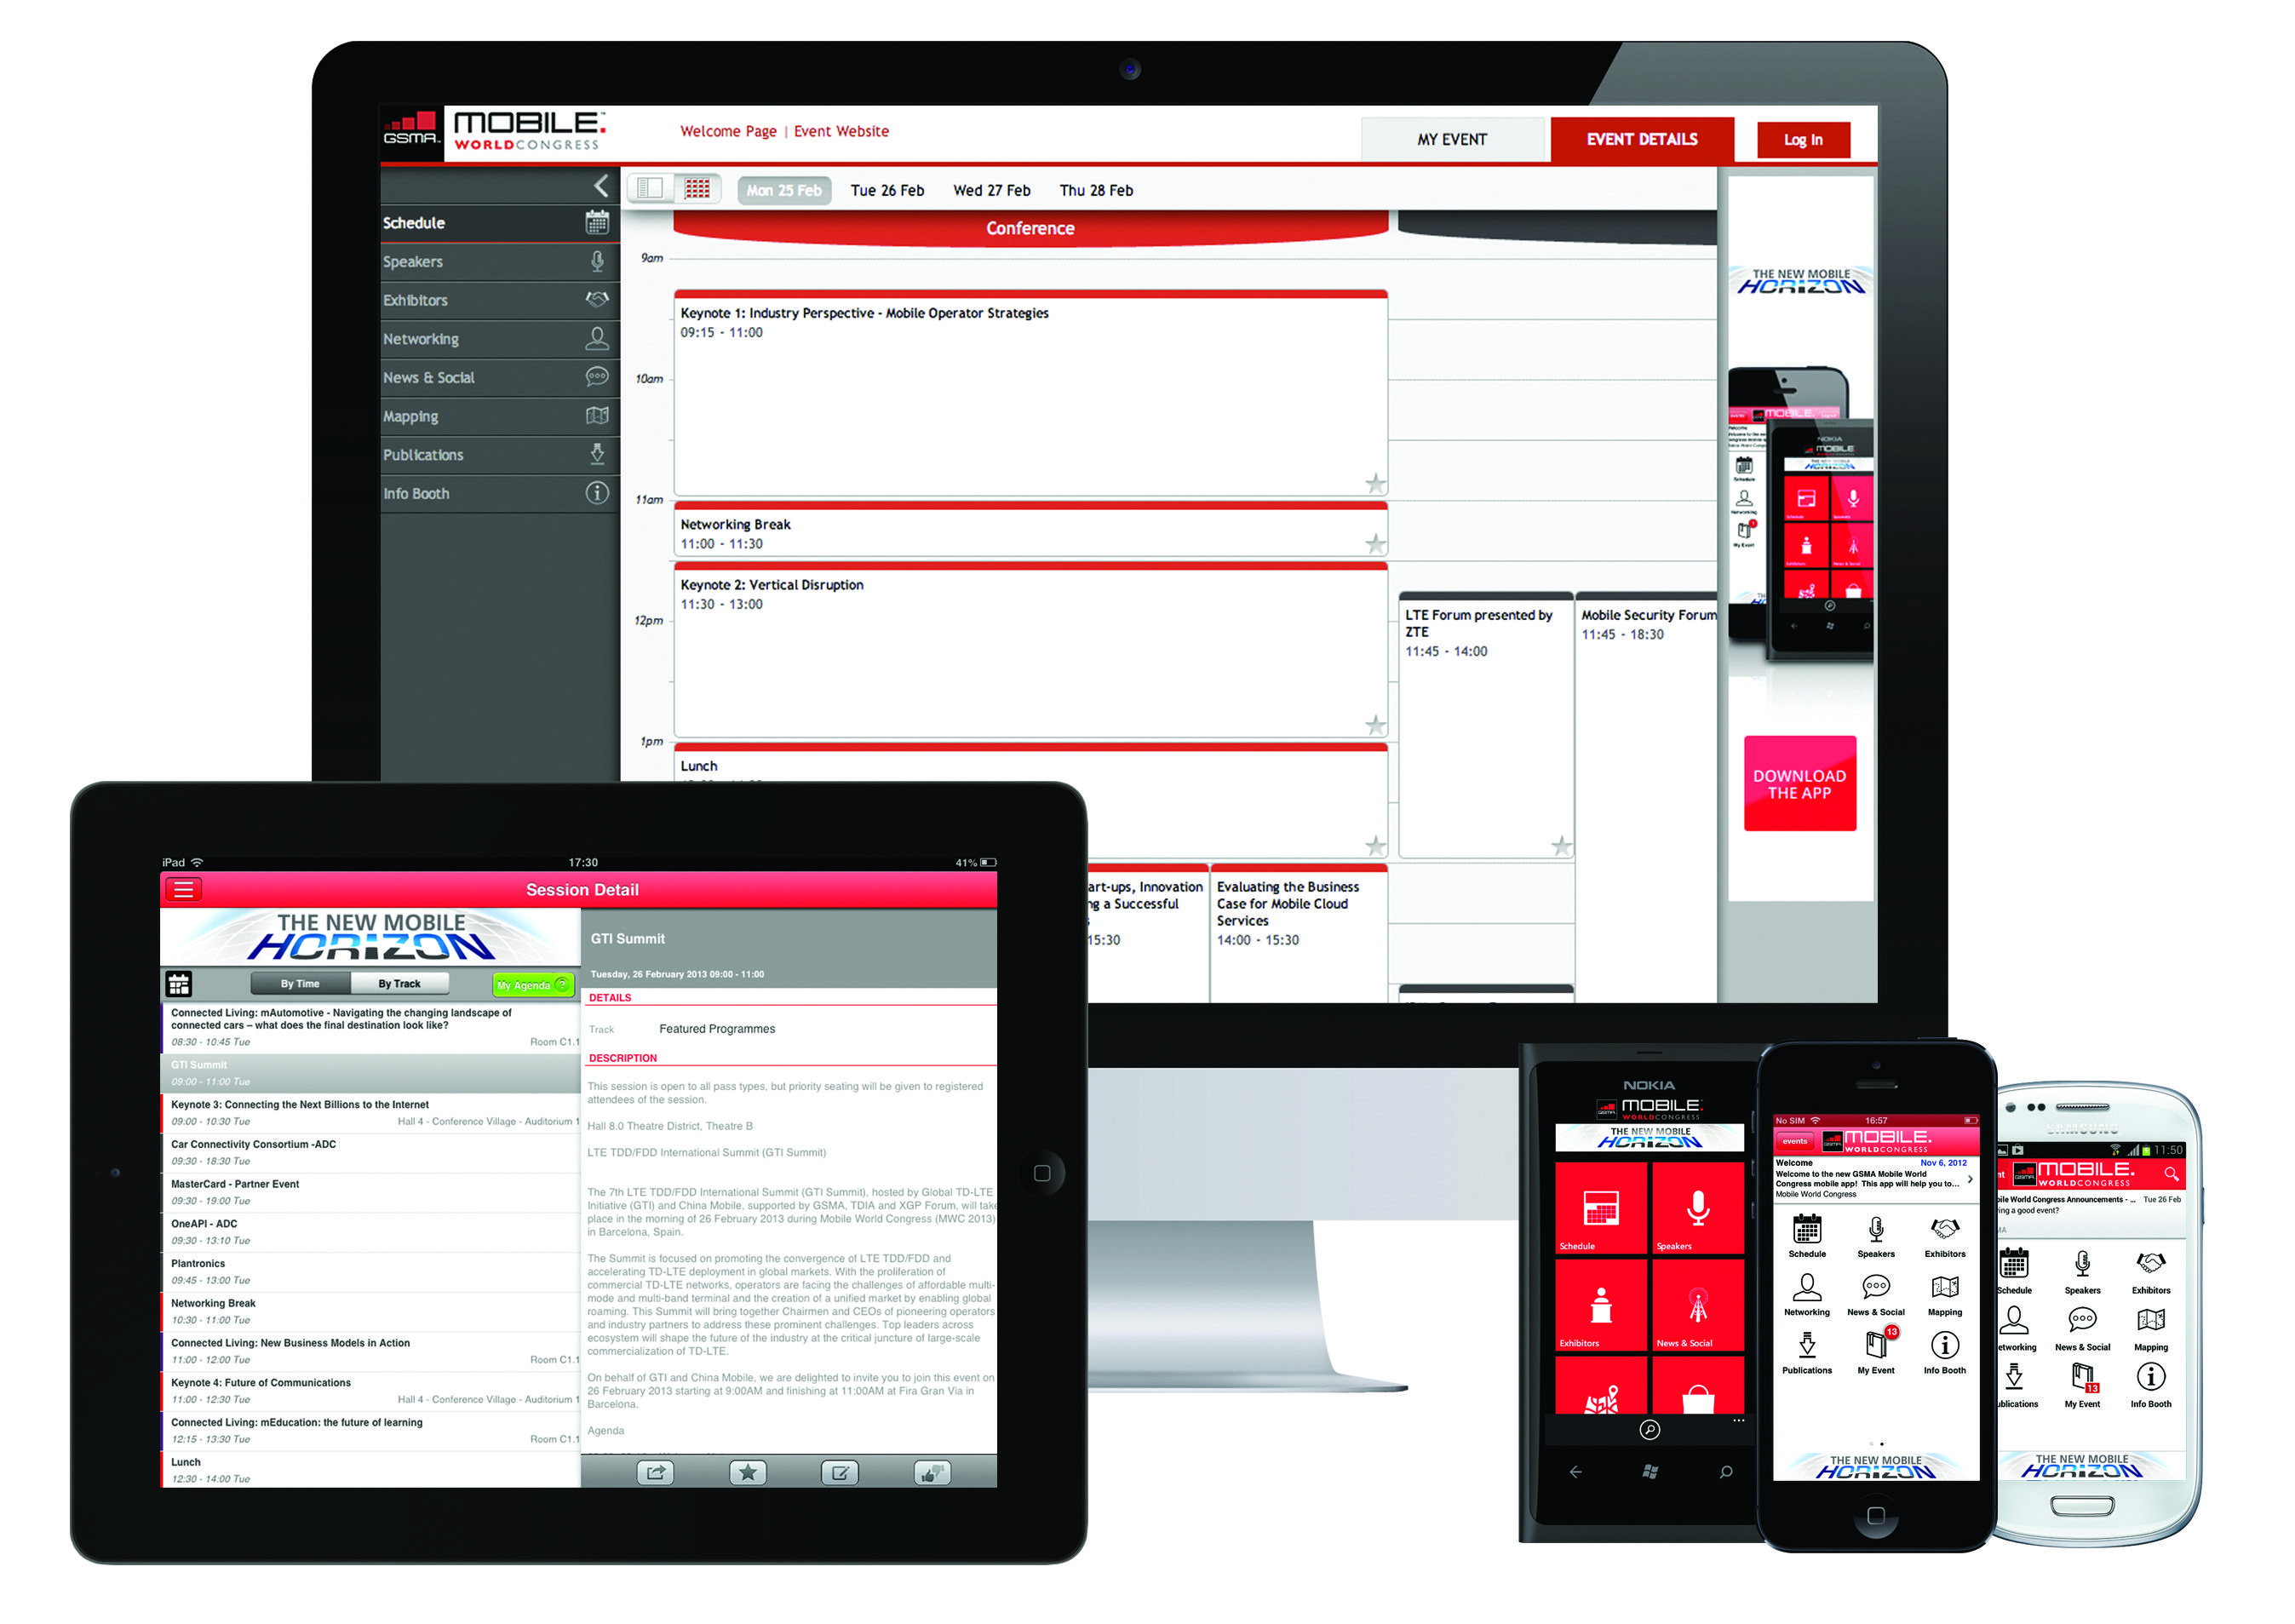 Agenda App Sync our mobile event apps are multi-screen and multi-platform